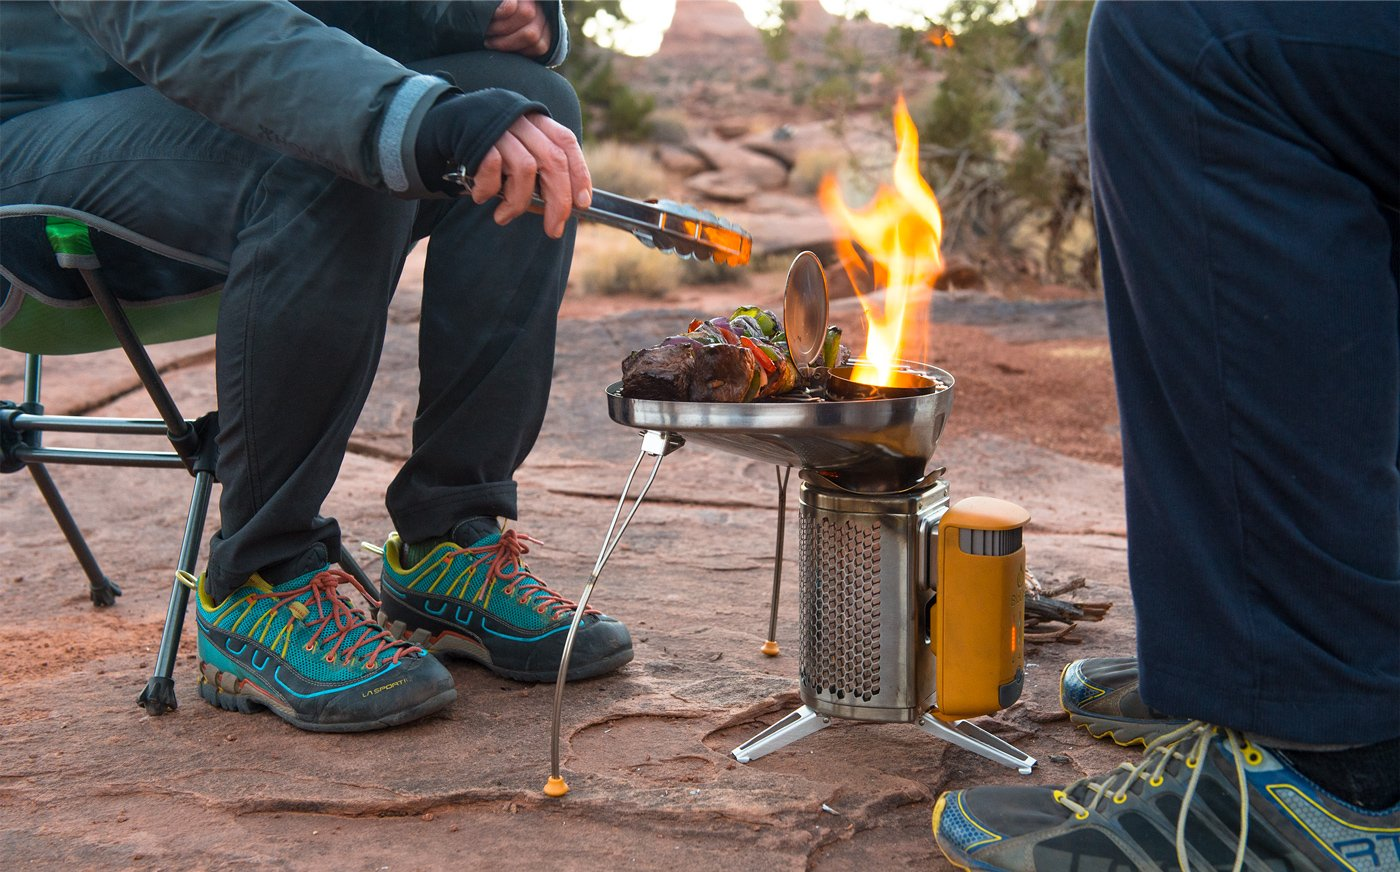 BioLite CampStove 2- Wood-Burning Small Lightweight Stove, USB FlexLight, Fire Starter, Generates 3W of Electricity for USB Charging Using Excess Heat, 5 x 5 x 8.3 Inches, Silver/Yellow (CSC1001) by BioLite (Image #6)